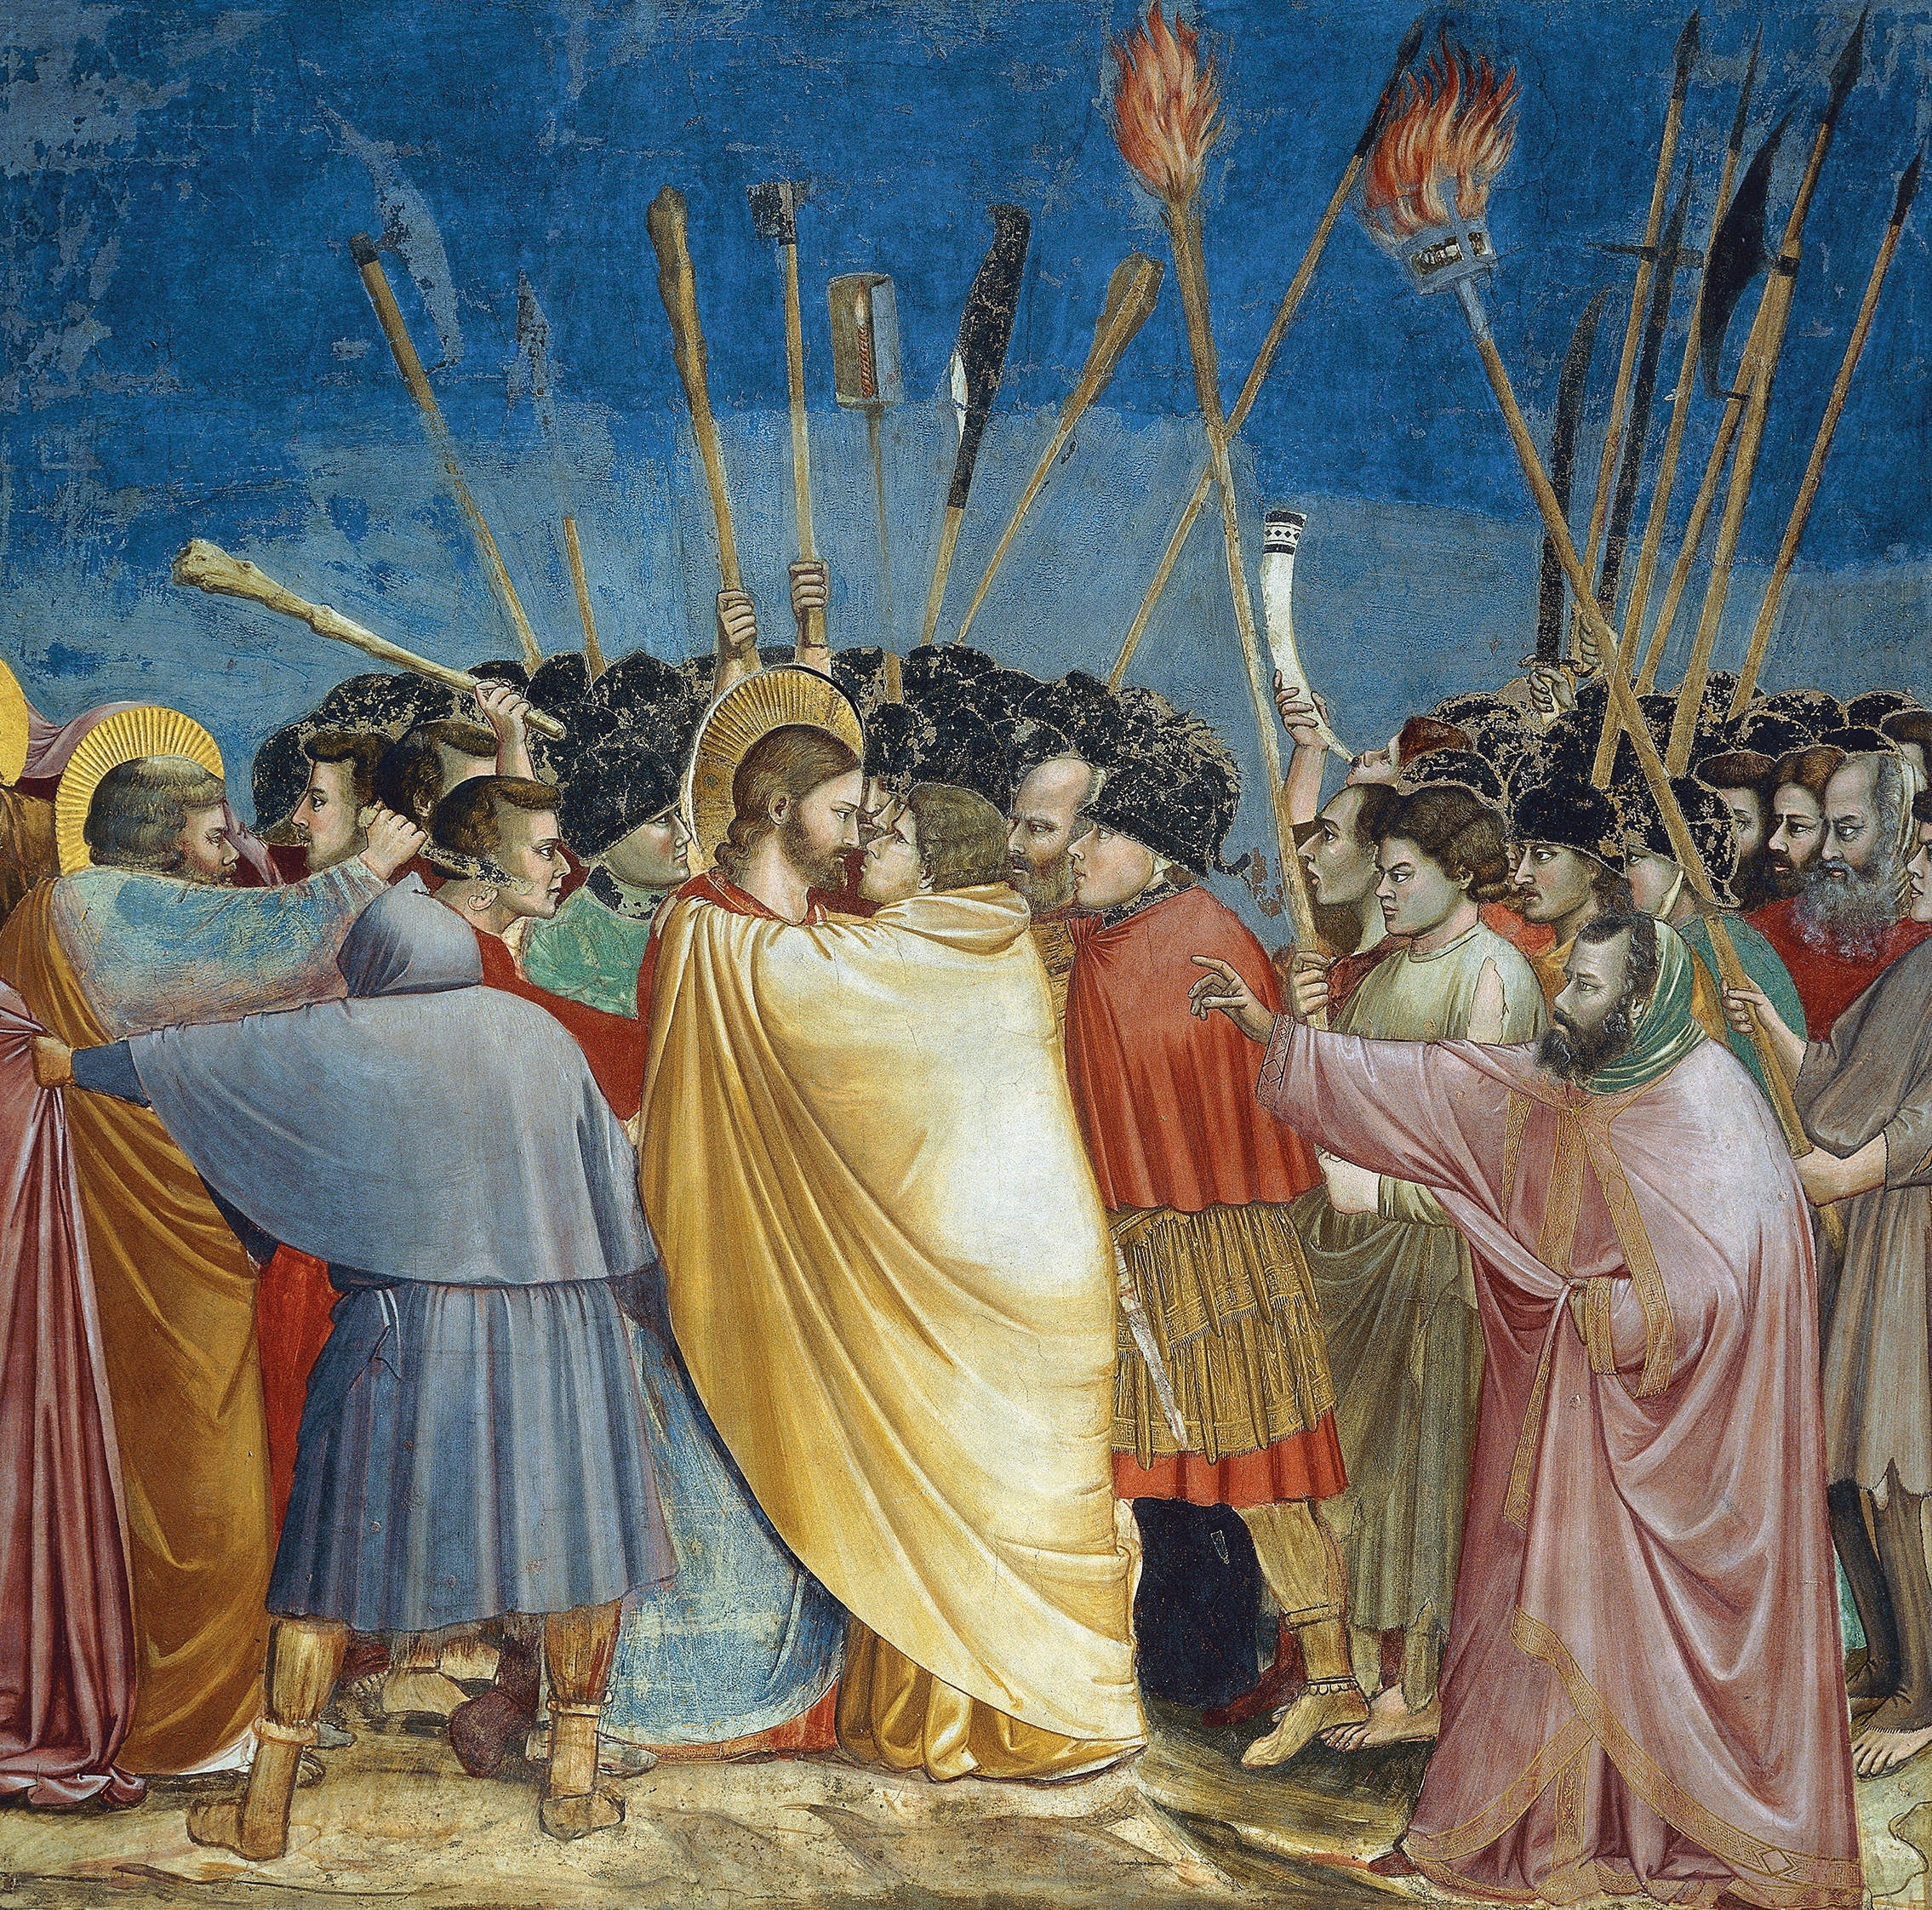 The betrayal of the first Christian: was Judas really a traitor?